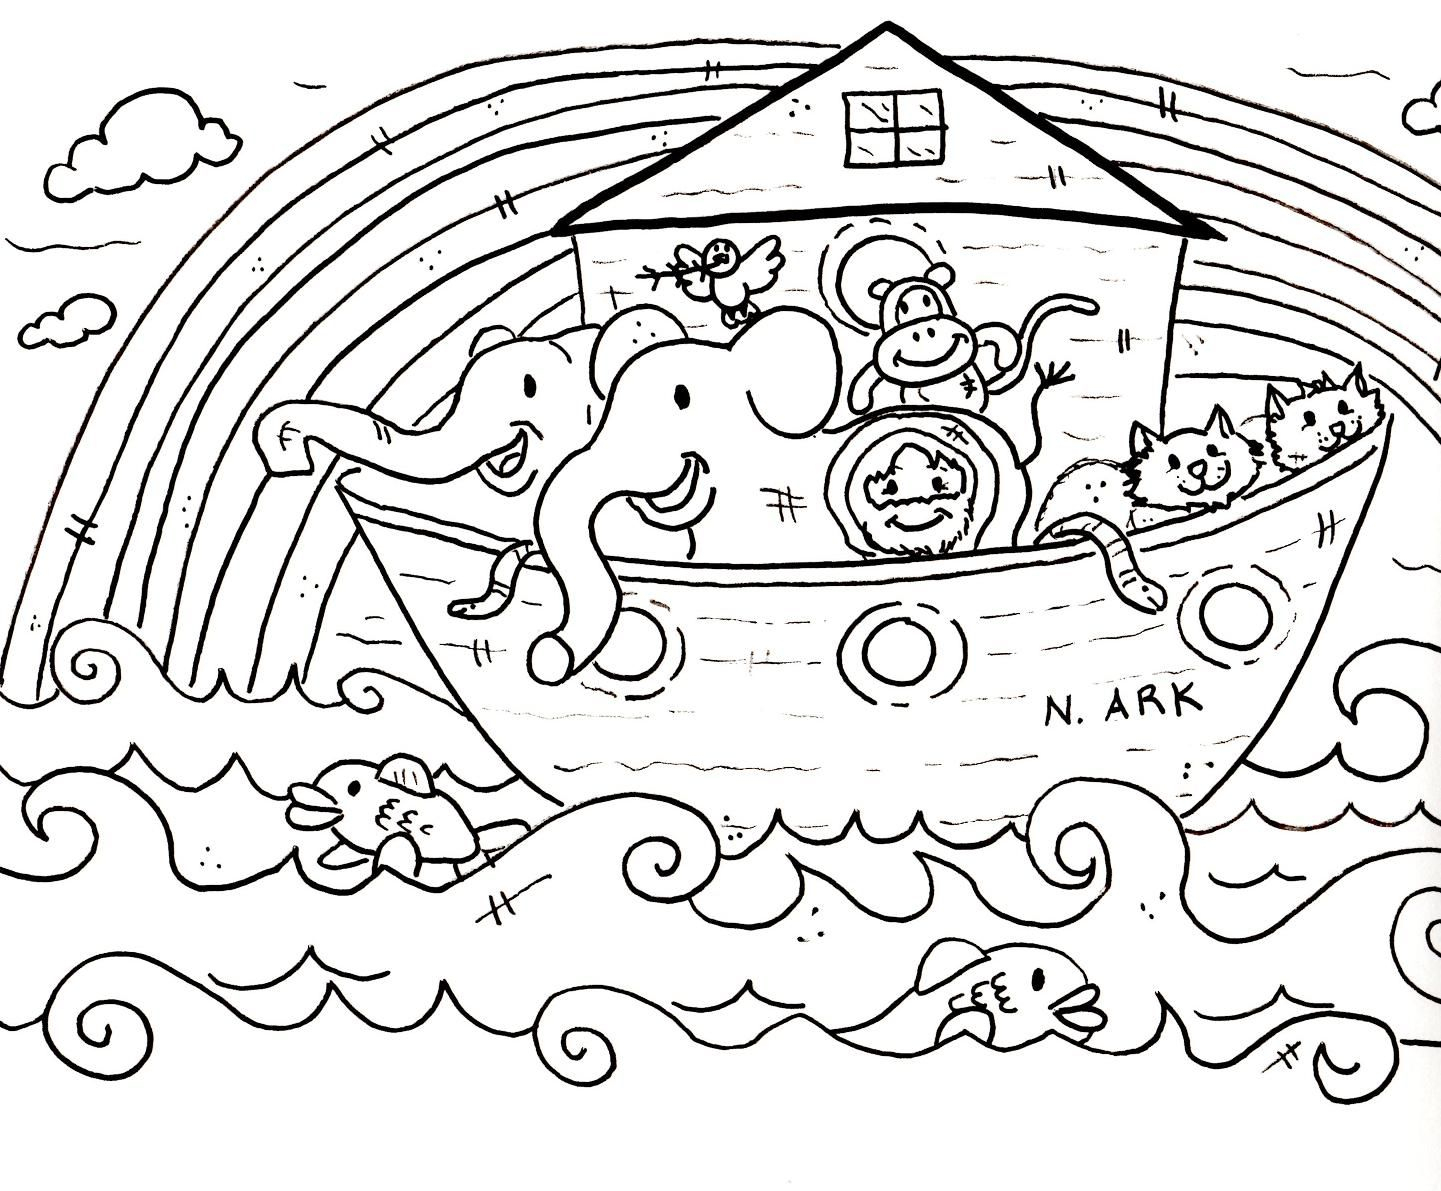 Children Coloring Pages For Church |  Sunday School Coloring - Free Printable Sunday School Coloring Sheets